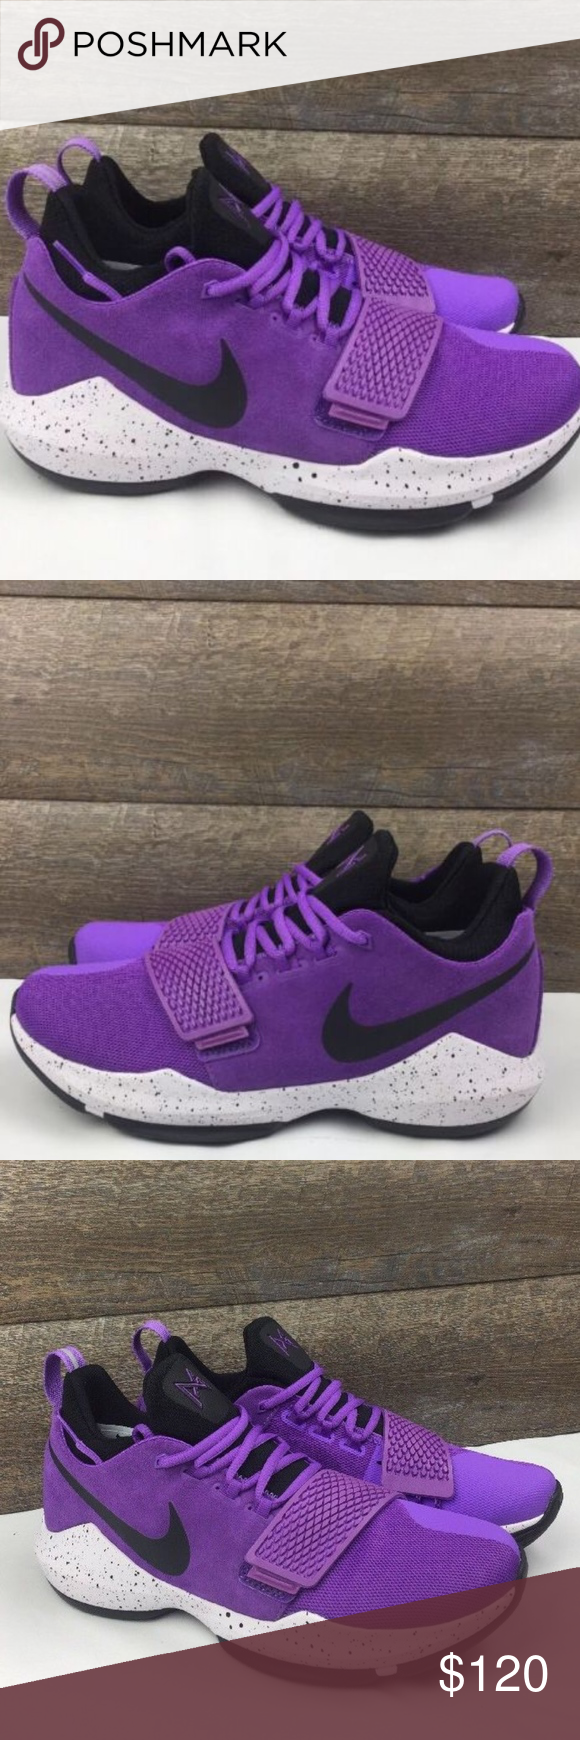 d30e3d6f7c7 Nike PG1 Paul George Basketball Shoes Nike PG1 Paul George Basketball Shoes  Bright Violet New Without